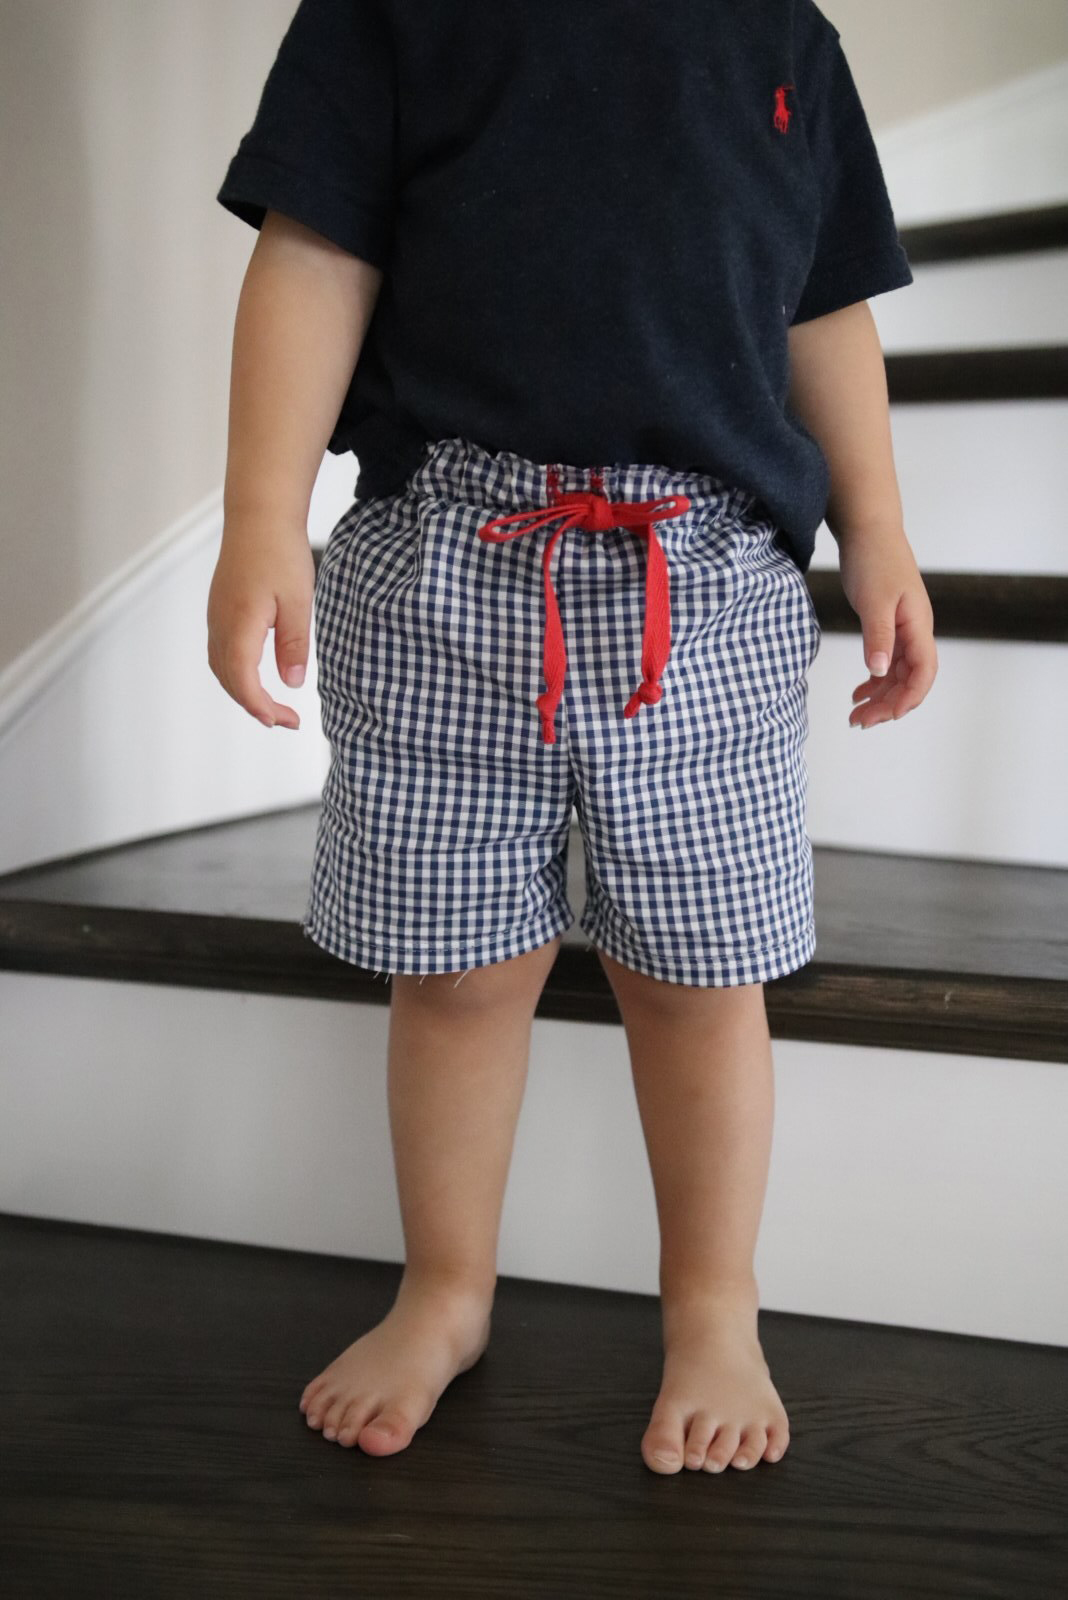 Century's High Waisted Elastic & Paperbag Pants, Capris, & Shorts Sizes NB to 14 Kids PDF Pattern